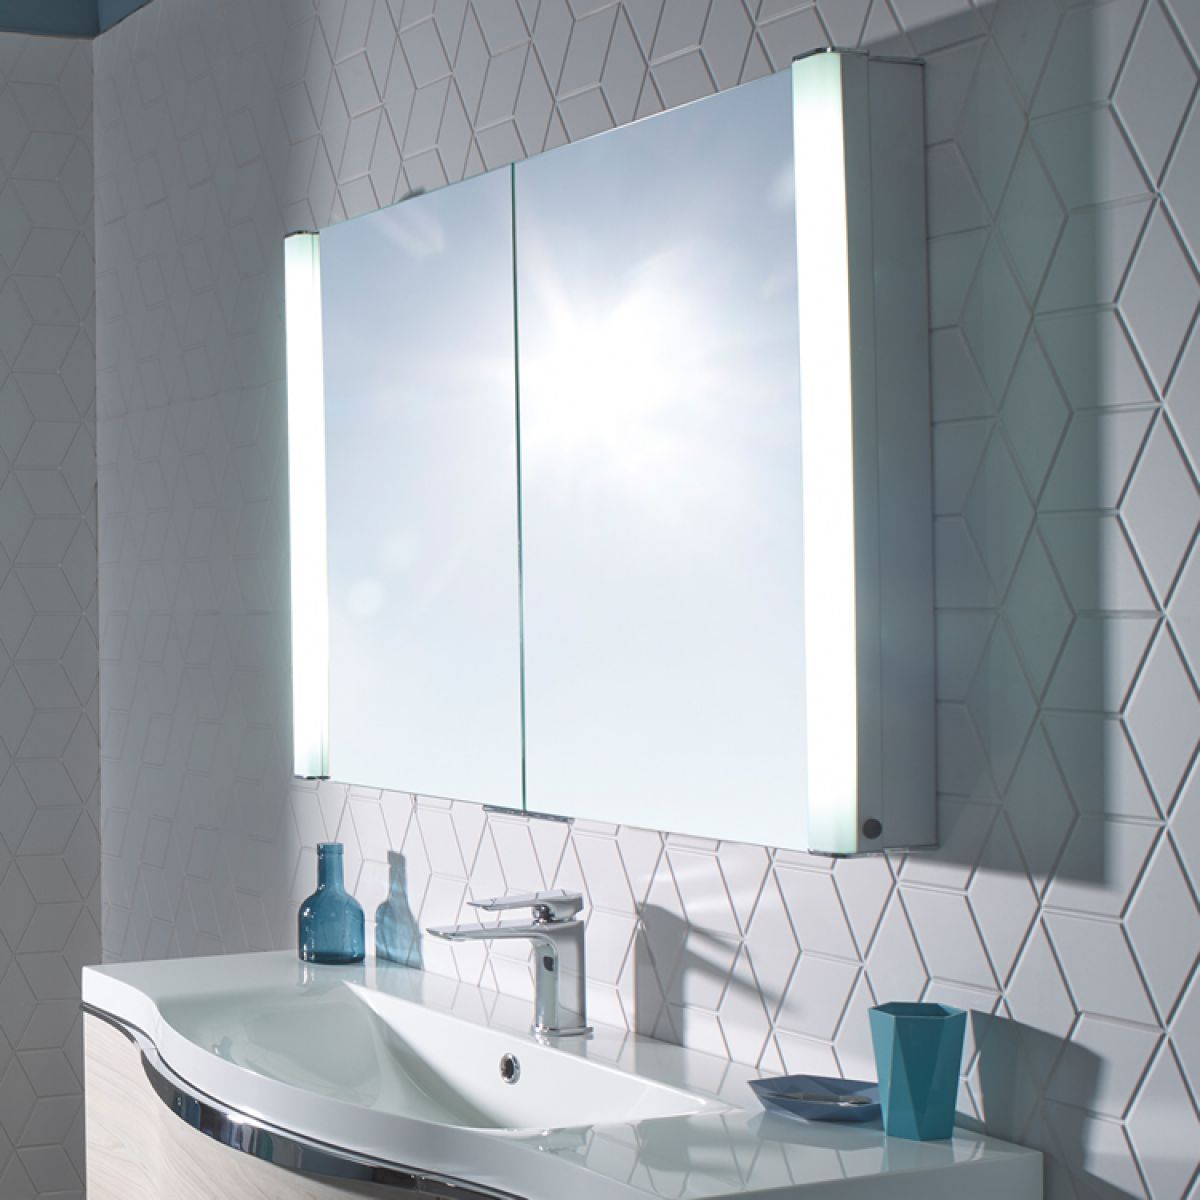 Mirrored Bathroom Cabinets Uk Roper Rhodes Perception Illuminated Bathroom Cabinet Uk Bathrooms